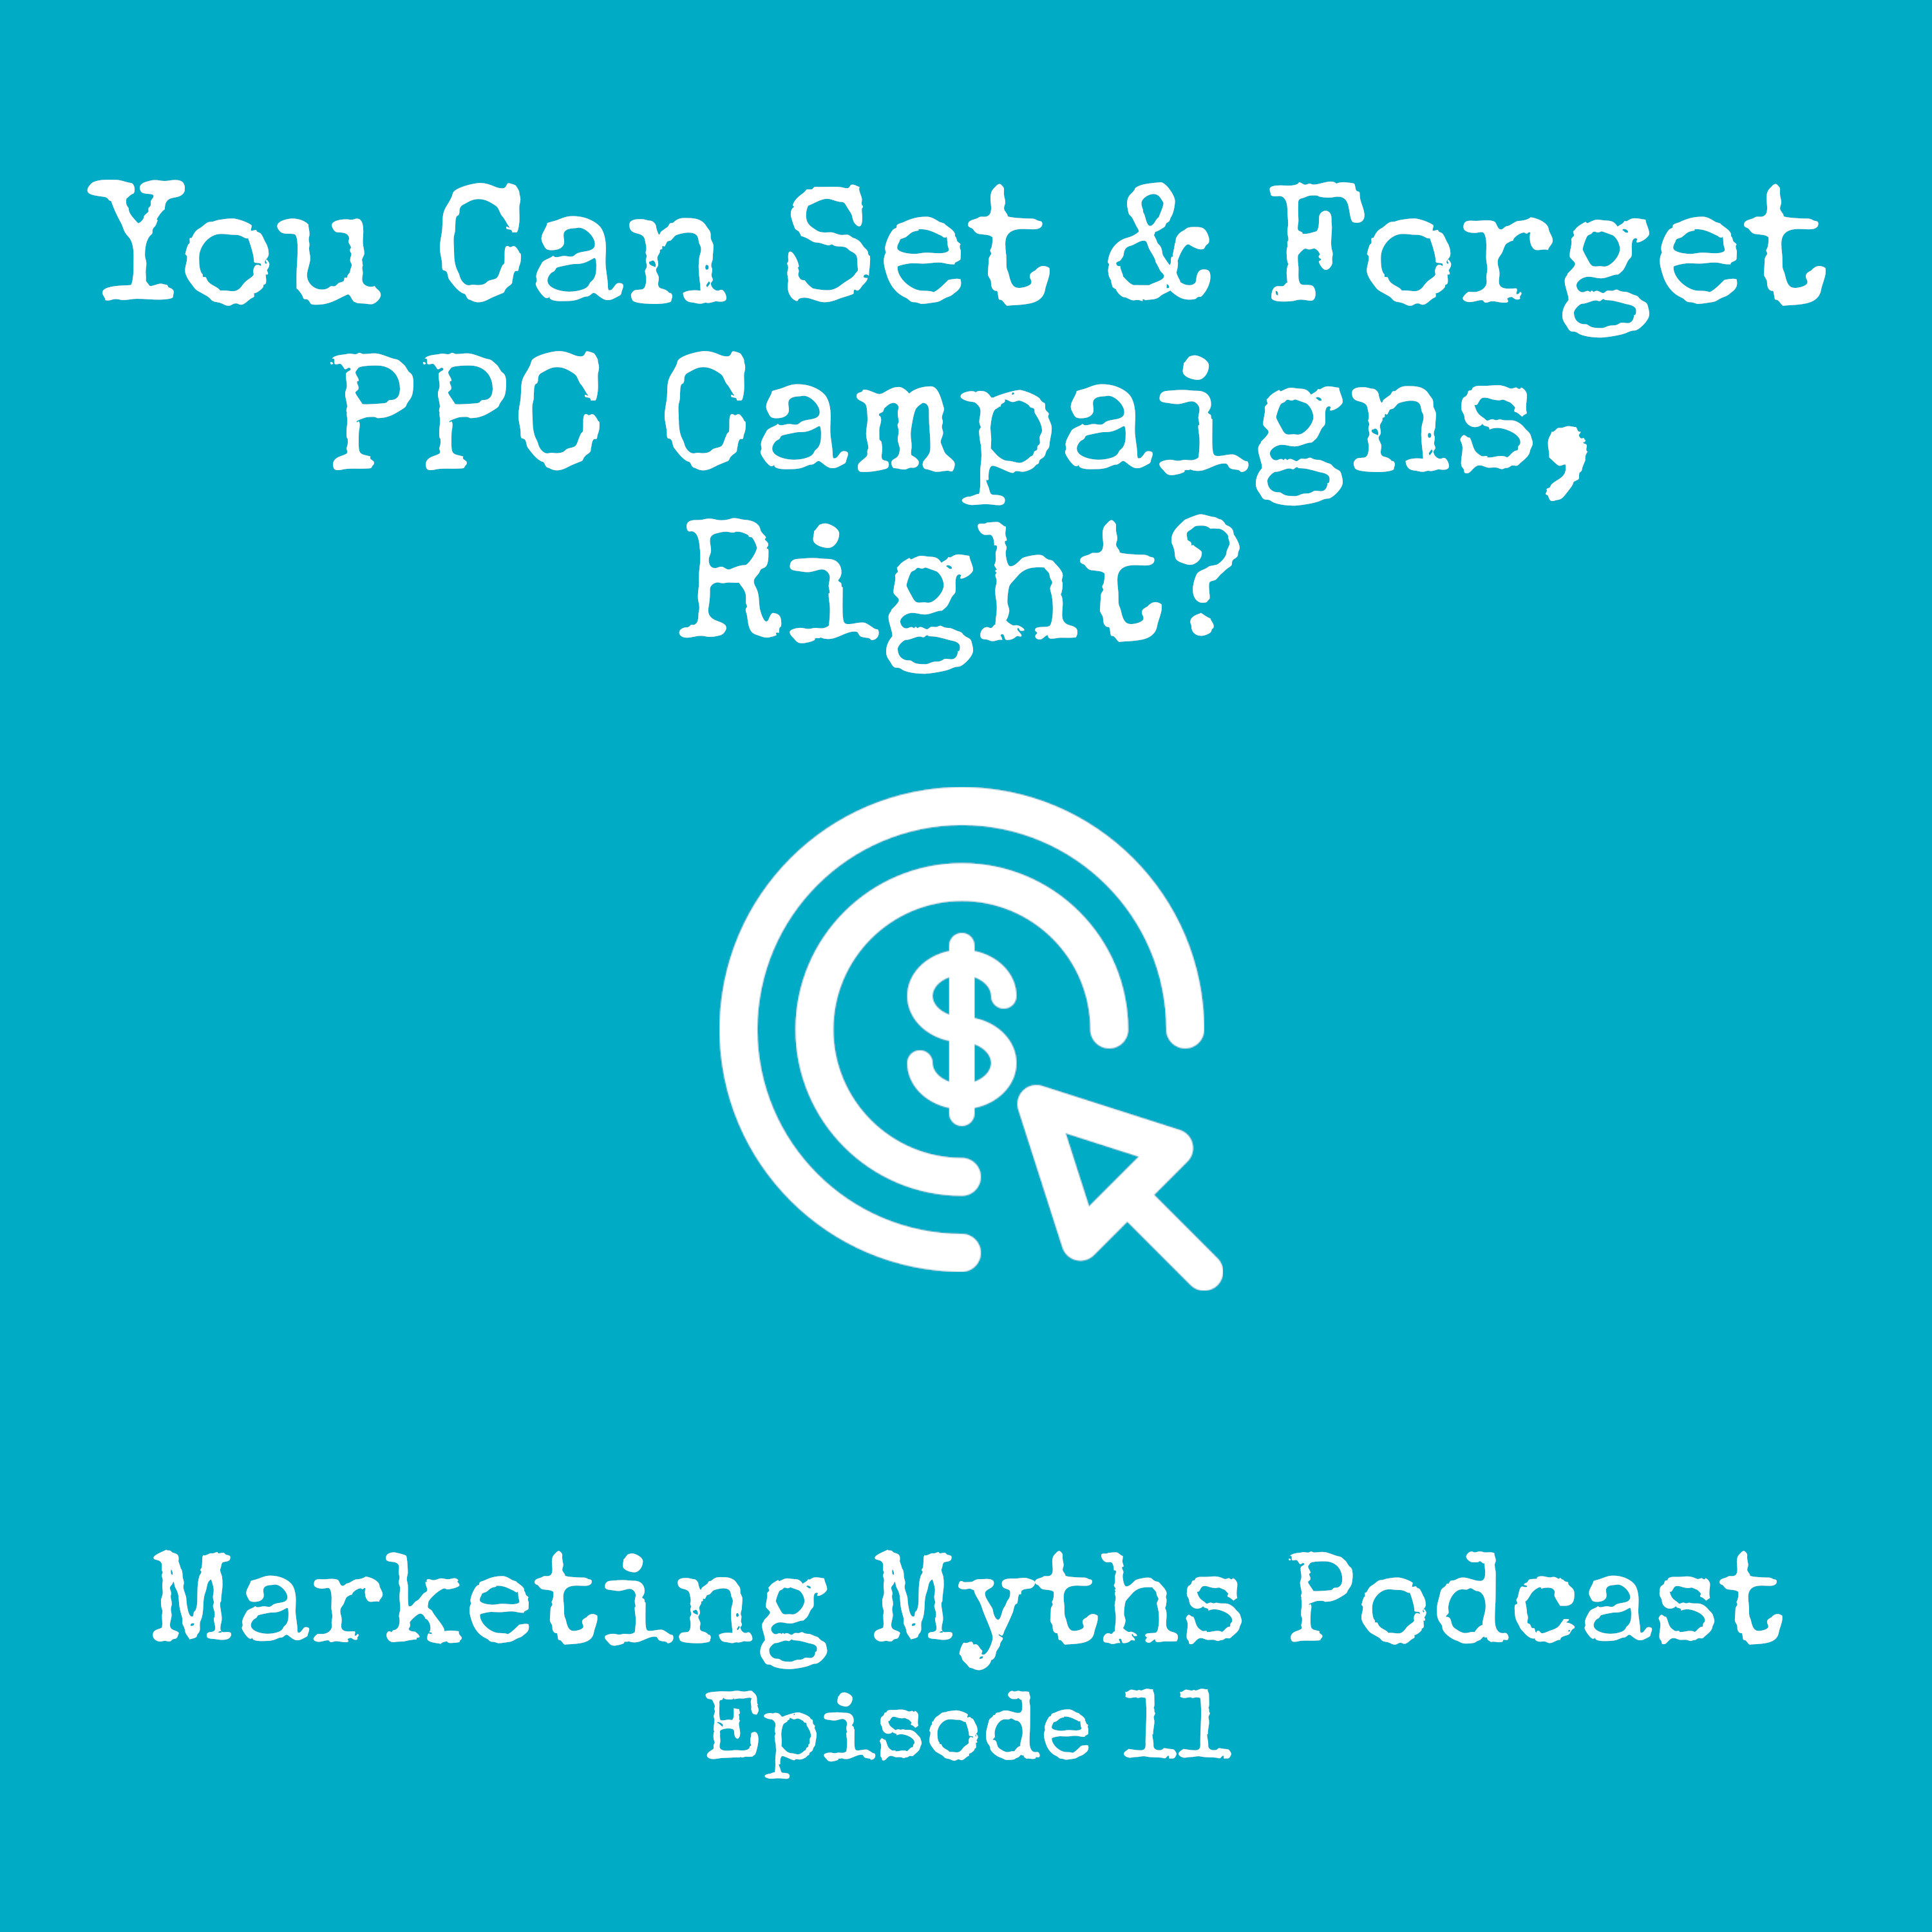 You Can Set & Forget PPC Campaigns, Right?